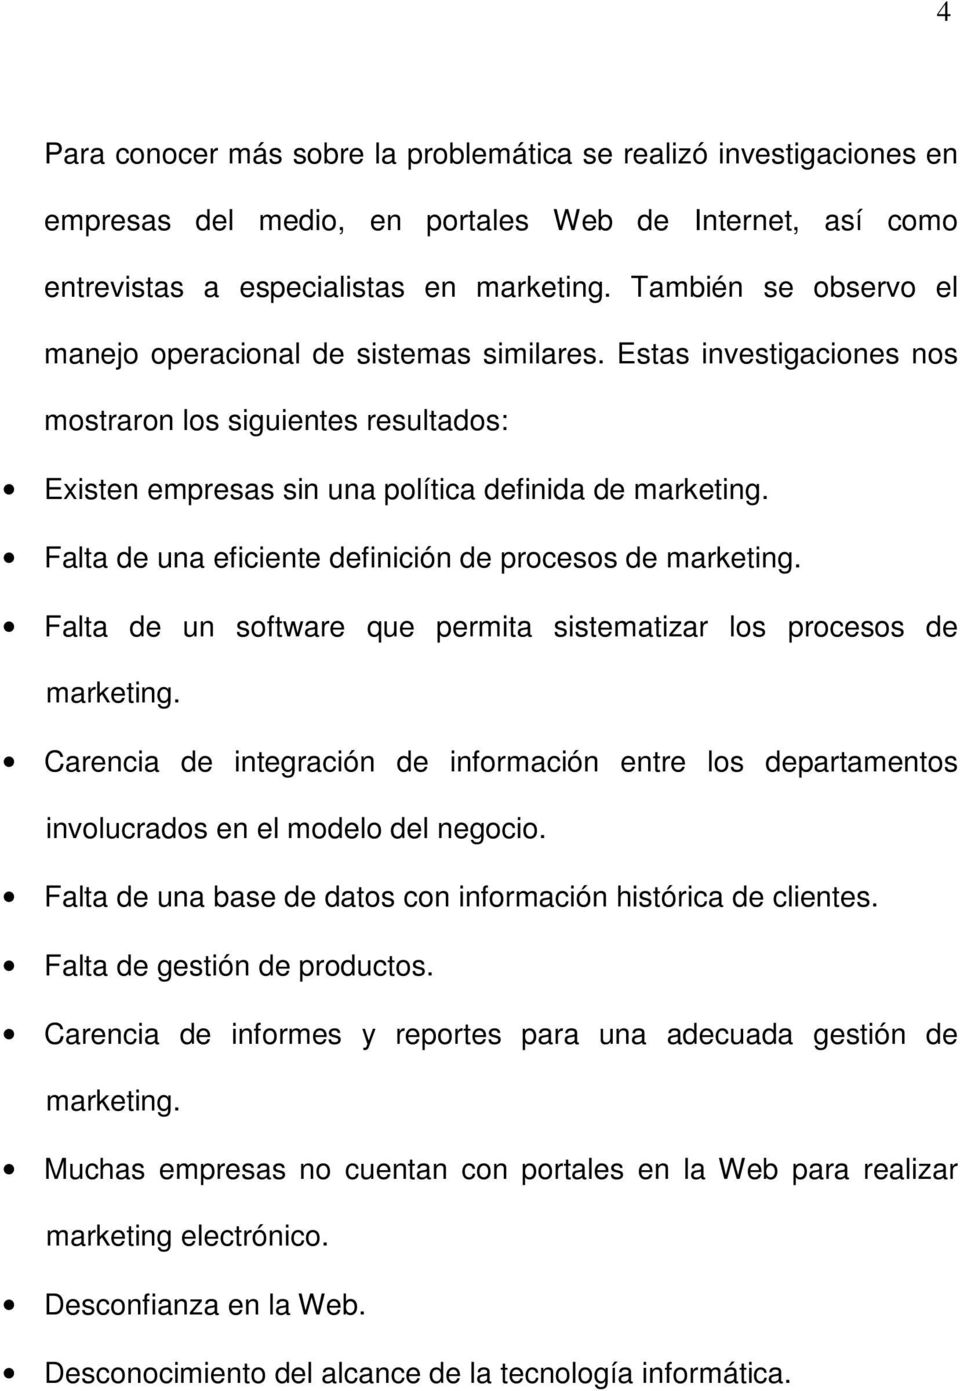 Falta de una eficiente definición de procesos de marketing. Falta de un software que permita sistematizar los procesos de marketing.